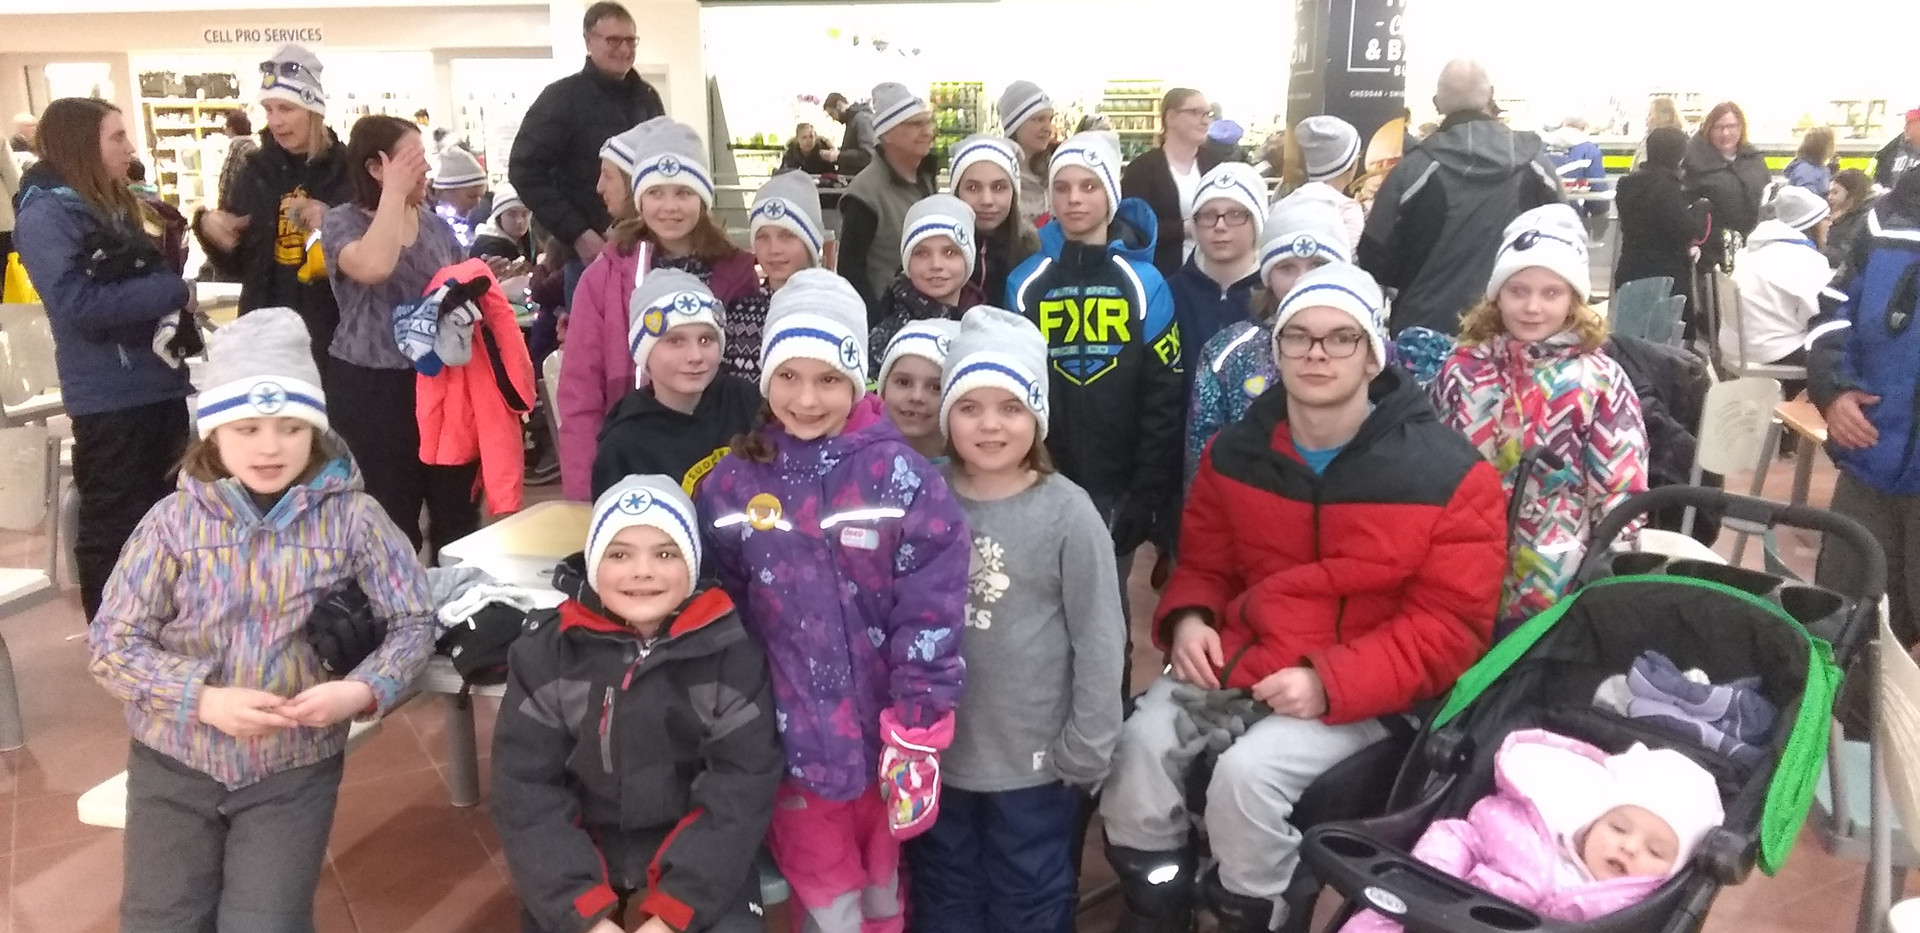 The Kids who were on the Coldest Night of the Year Team